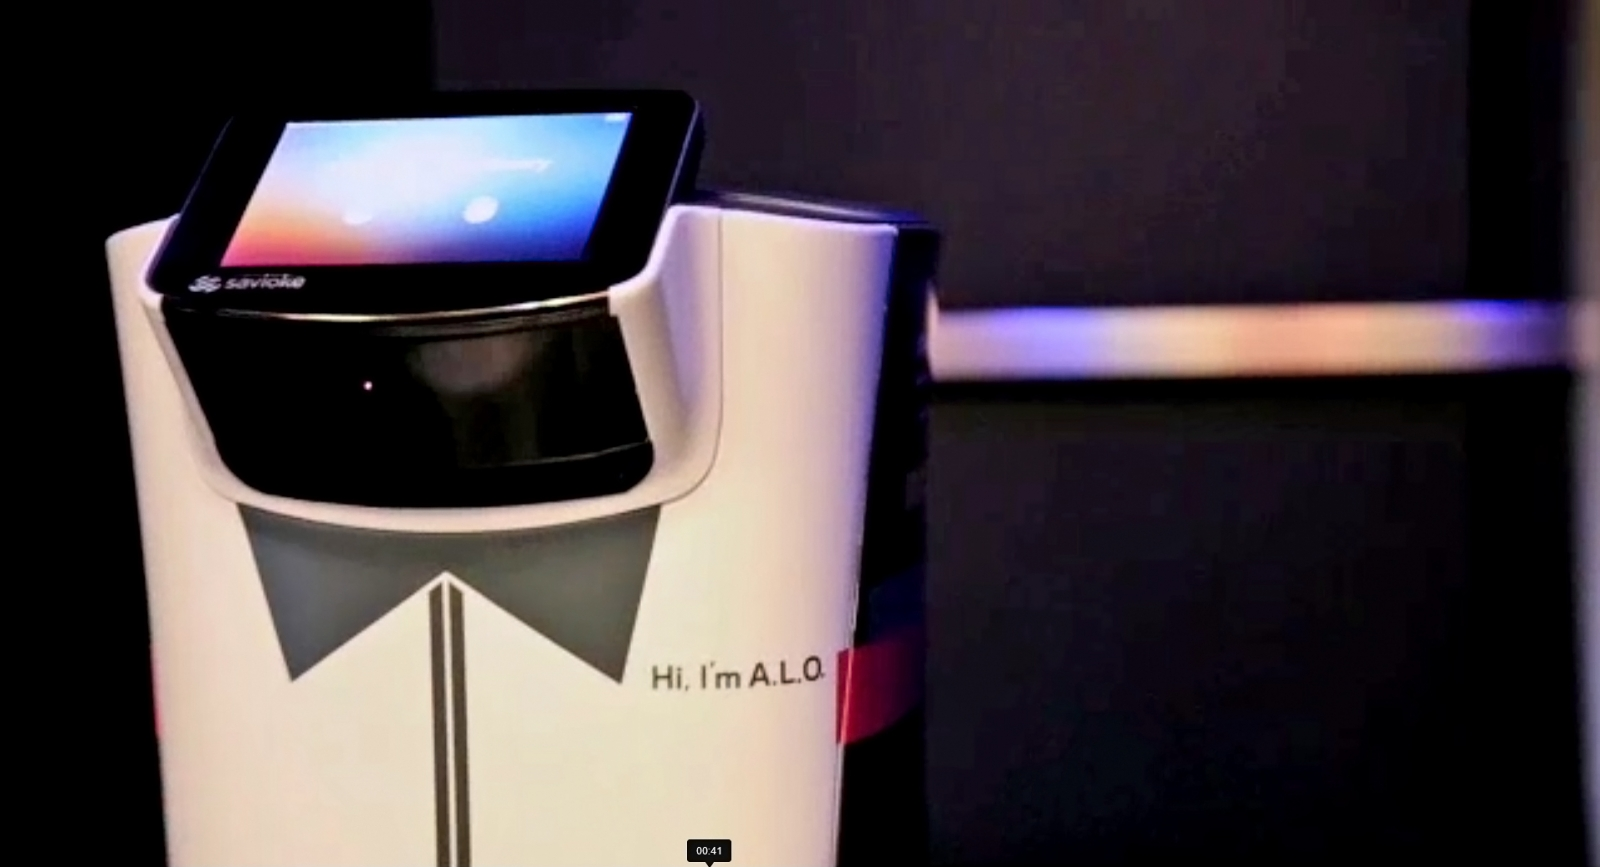 ALO, a new Botlr robot designed by Savioke for Aloft Hotels in Cupertino, California